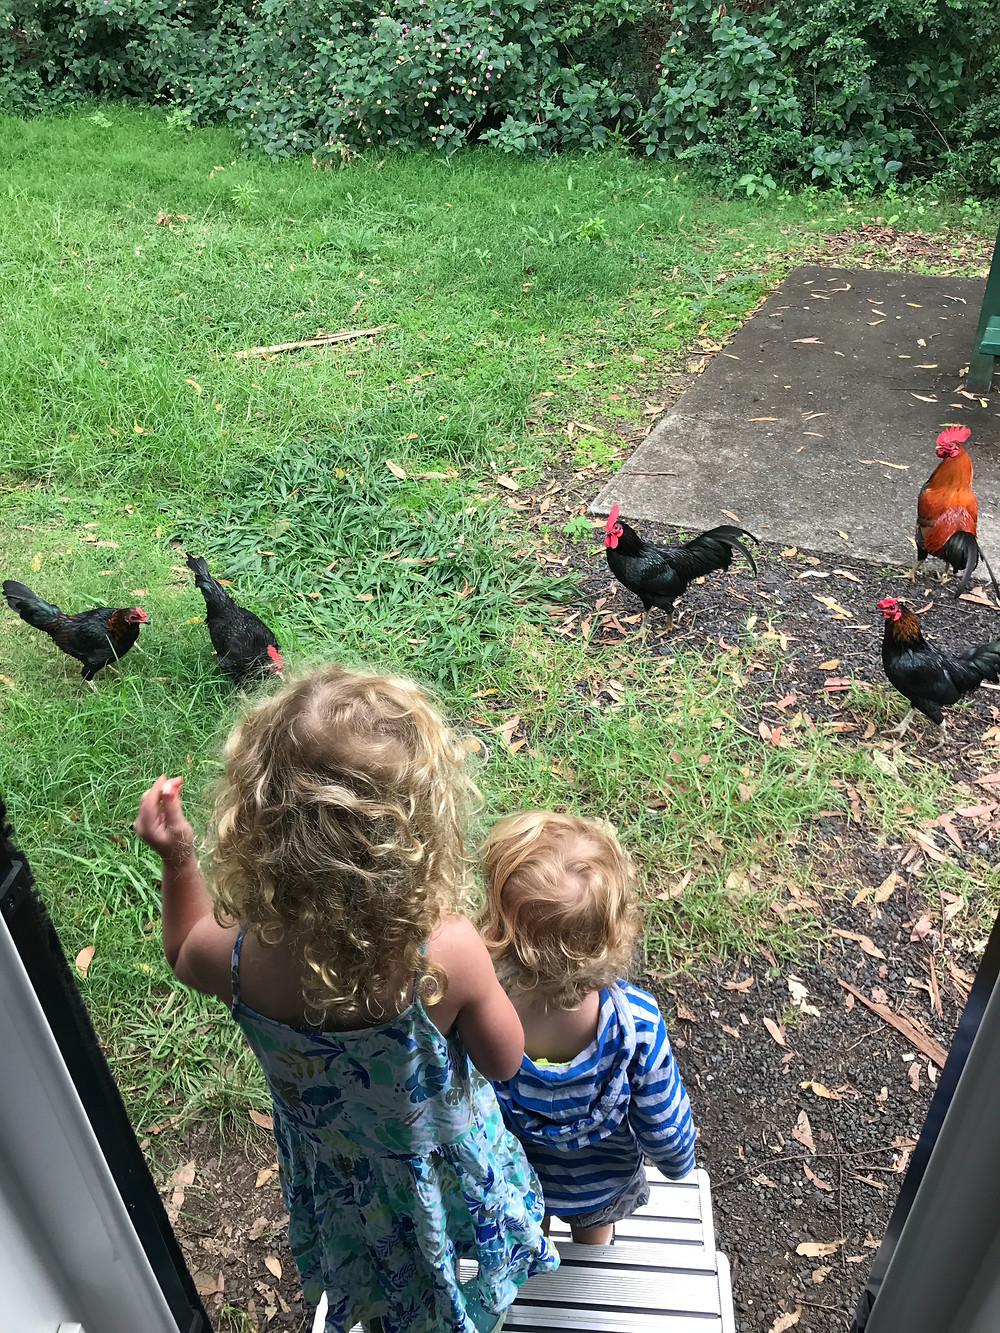 Feeding the chickens at Tom Cat Creek rest area